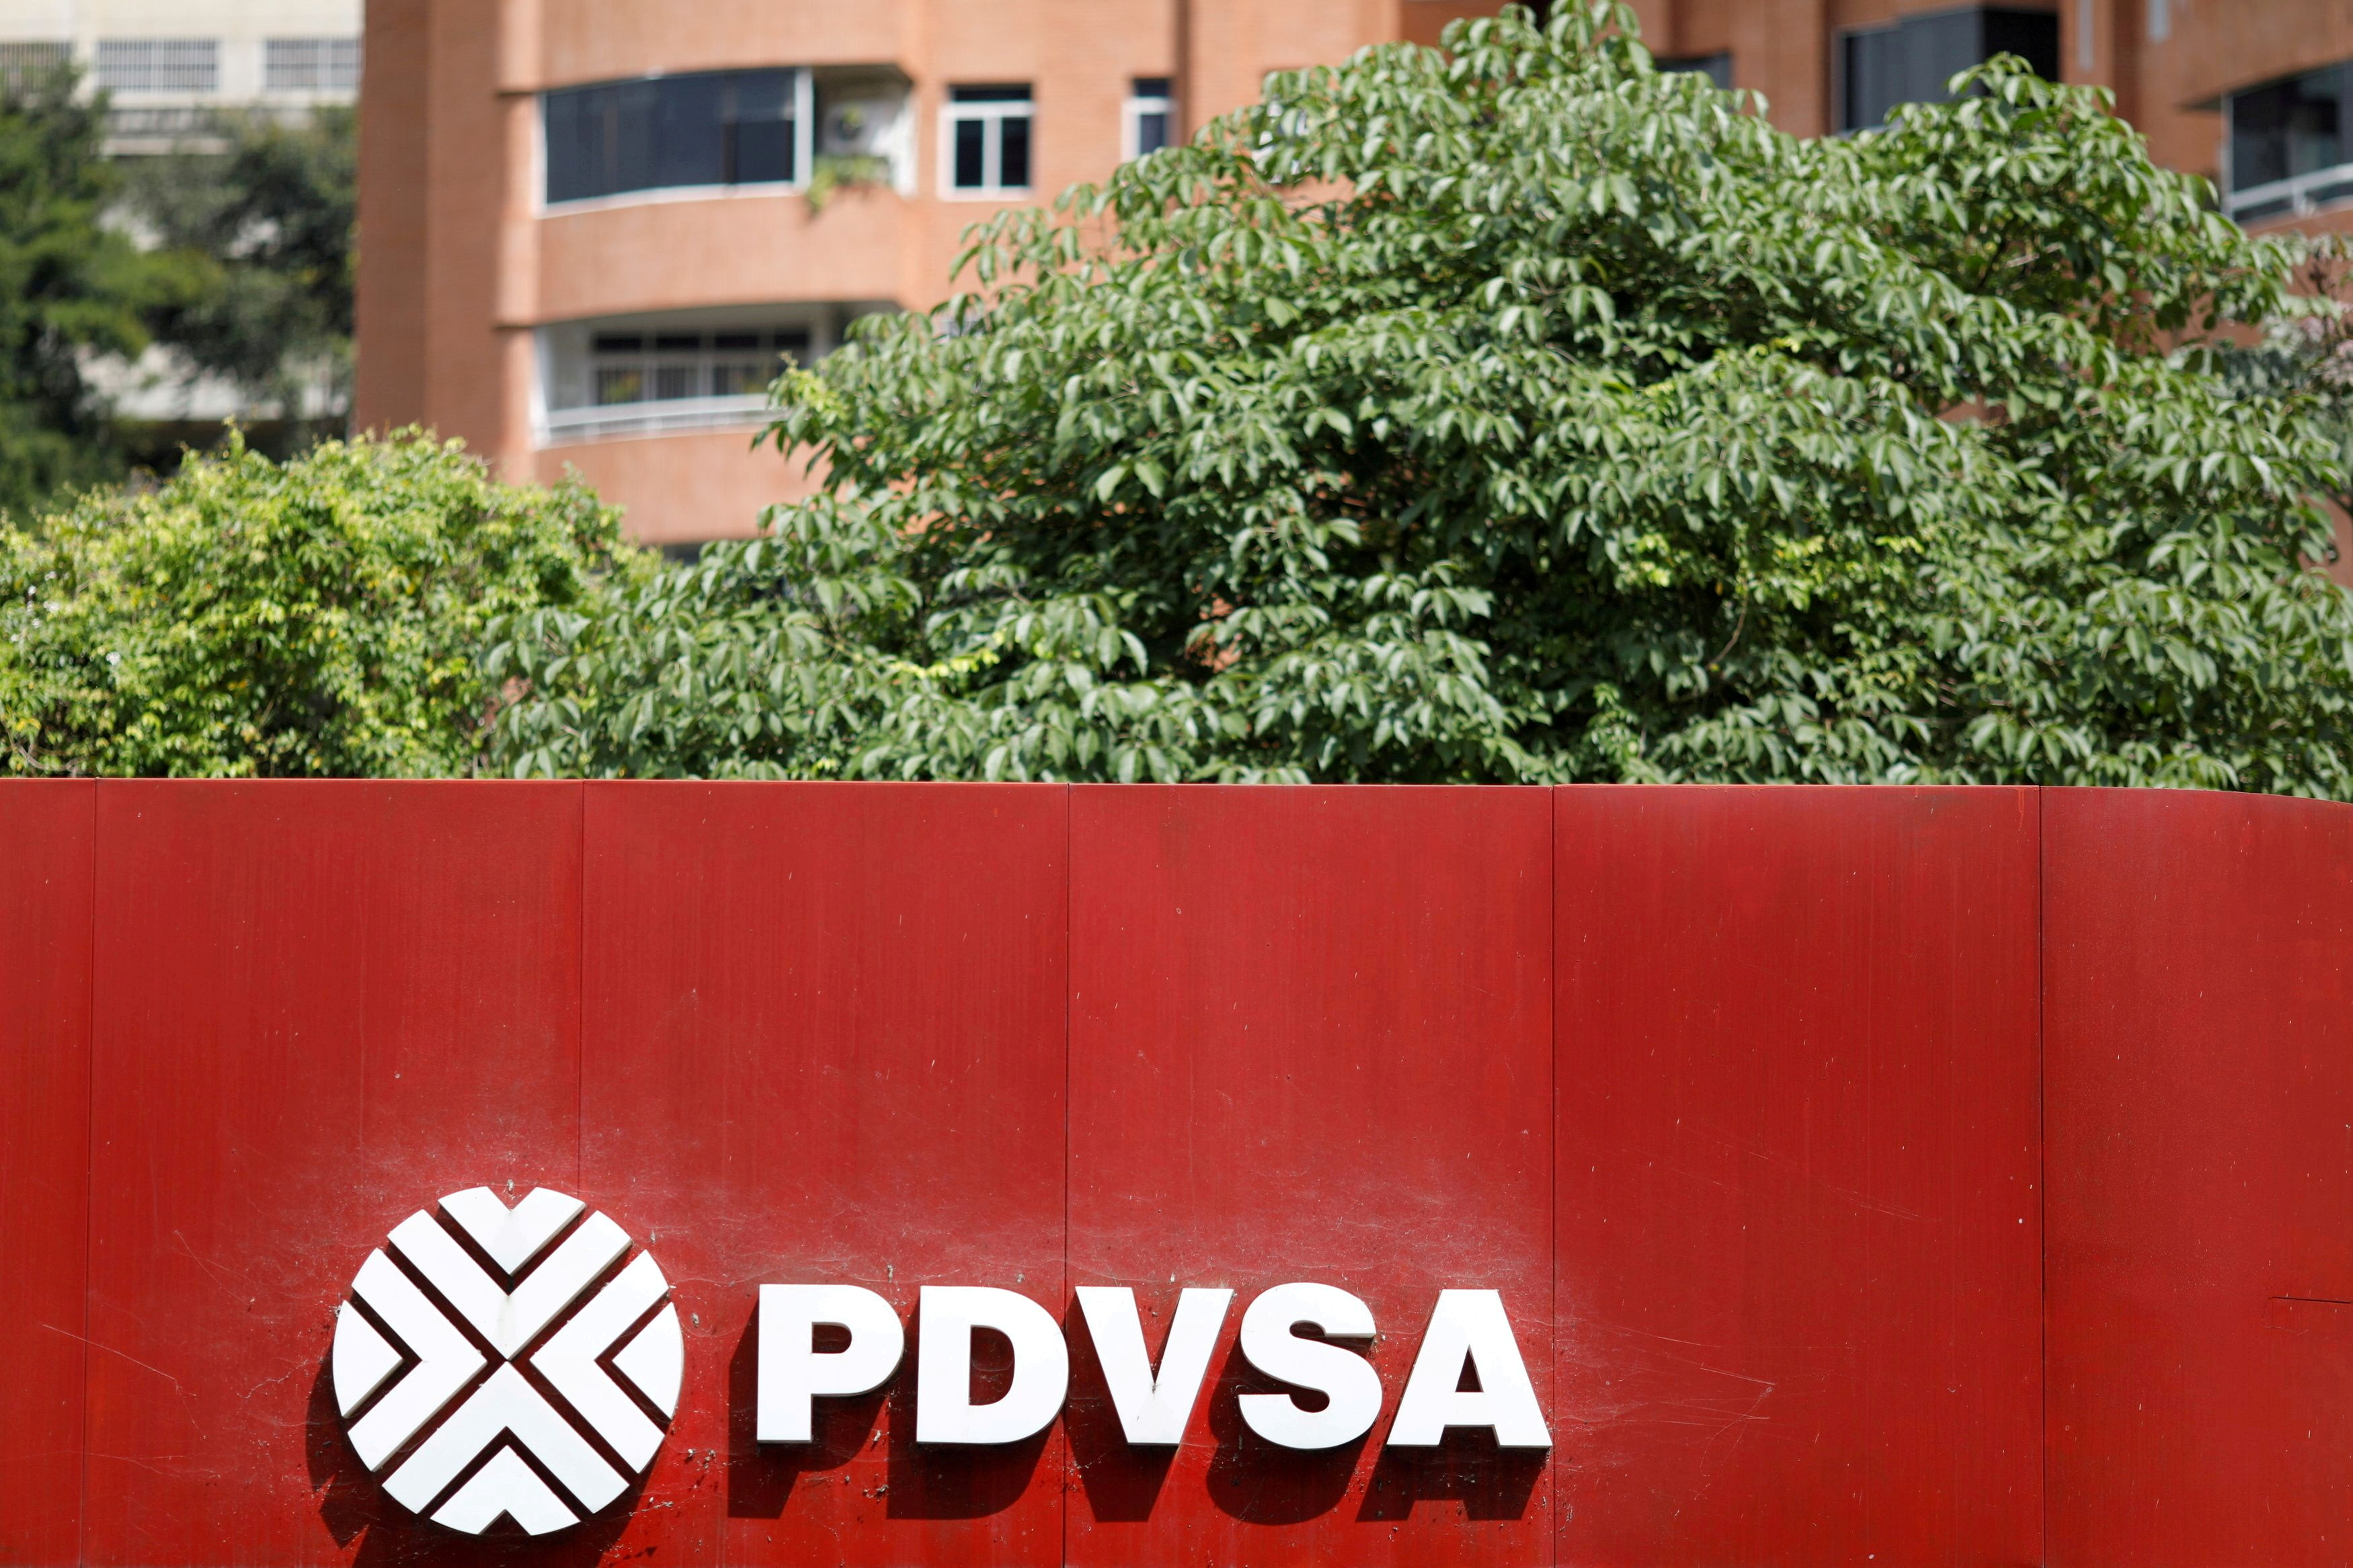 he corporate logo of the state oil company PDVSA is seen at a gas station in Caracas, Venezuela November 16, 2017. REUTERS/Marco Bello/File Photo